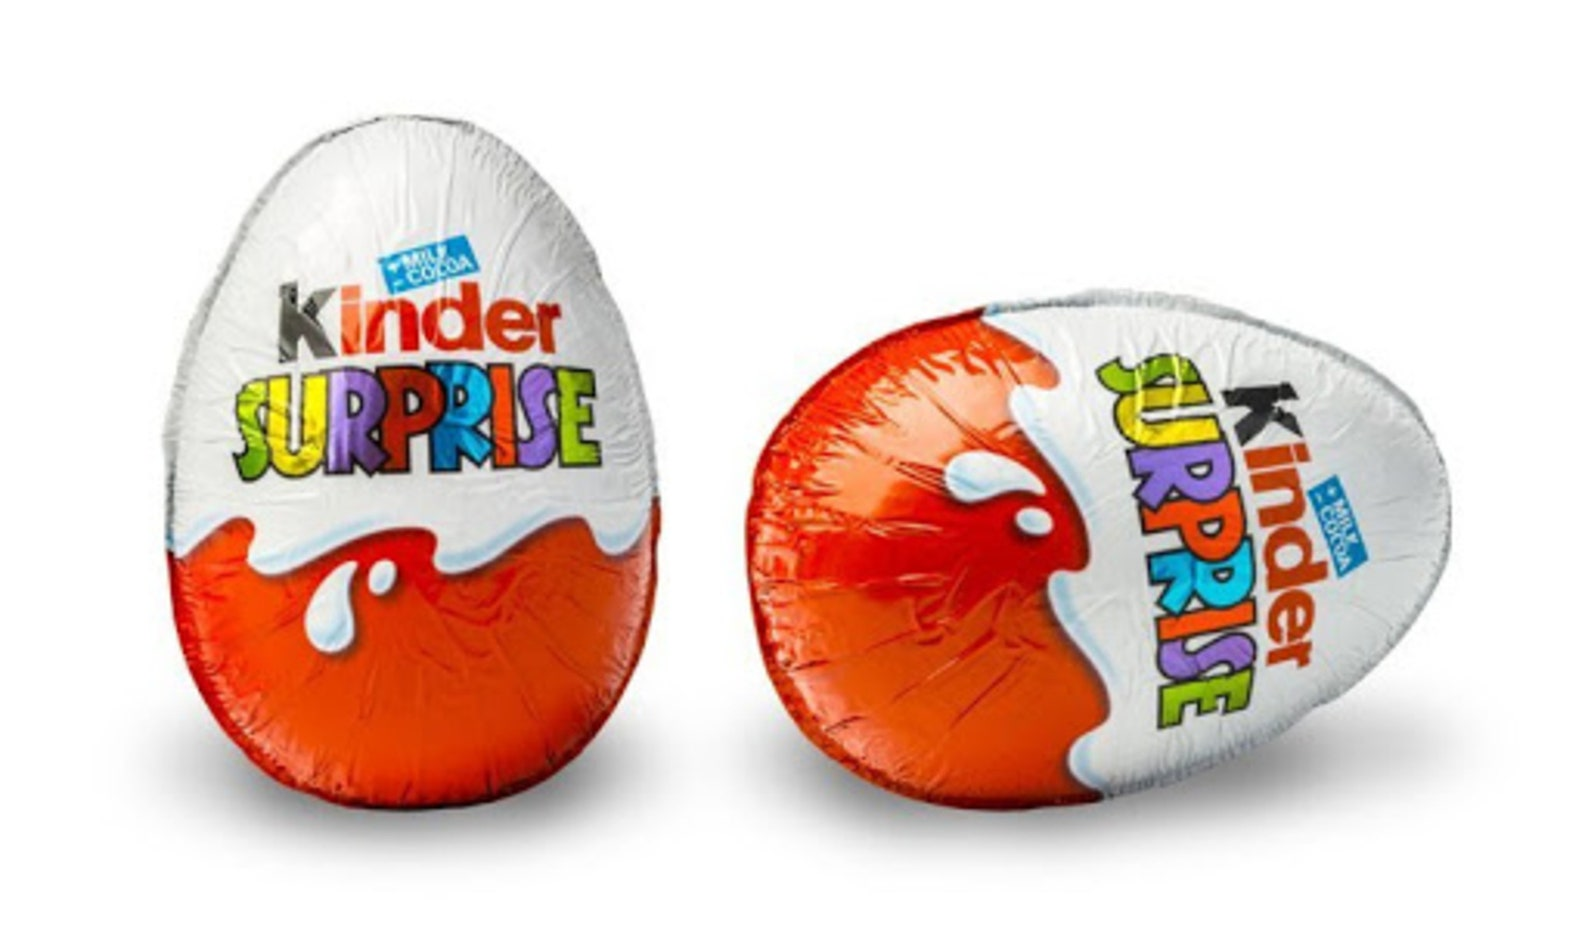 Original KINDER SURPRISE, Chocolate egg with a toy inside